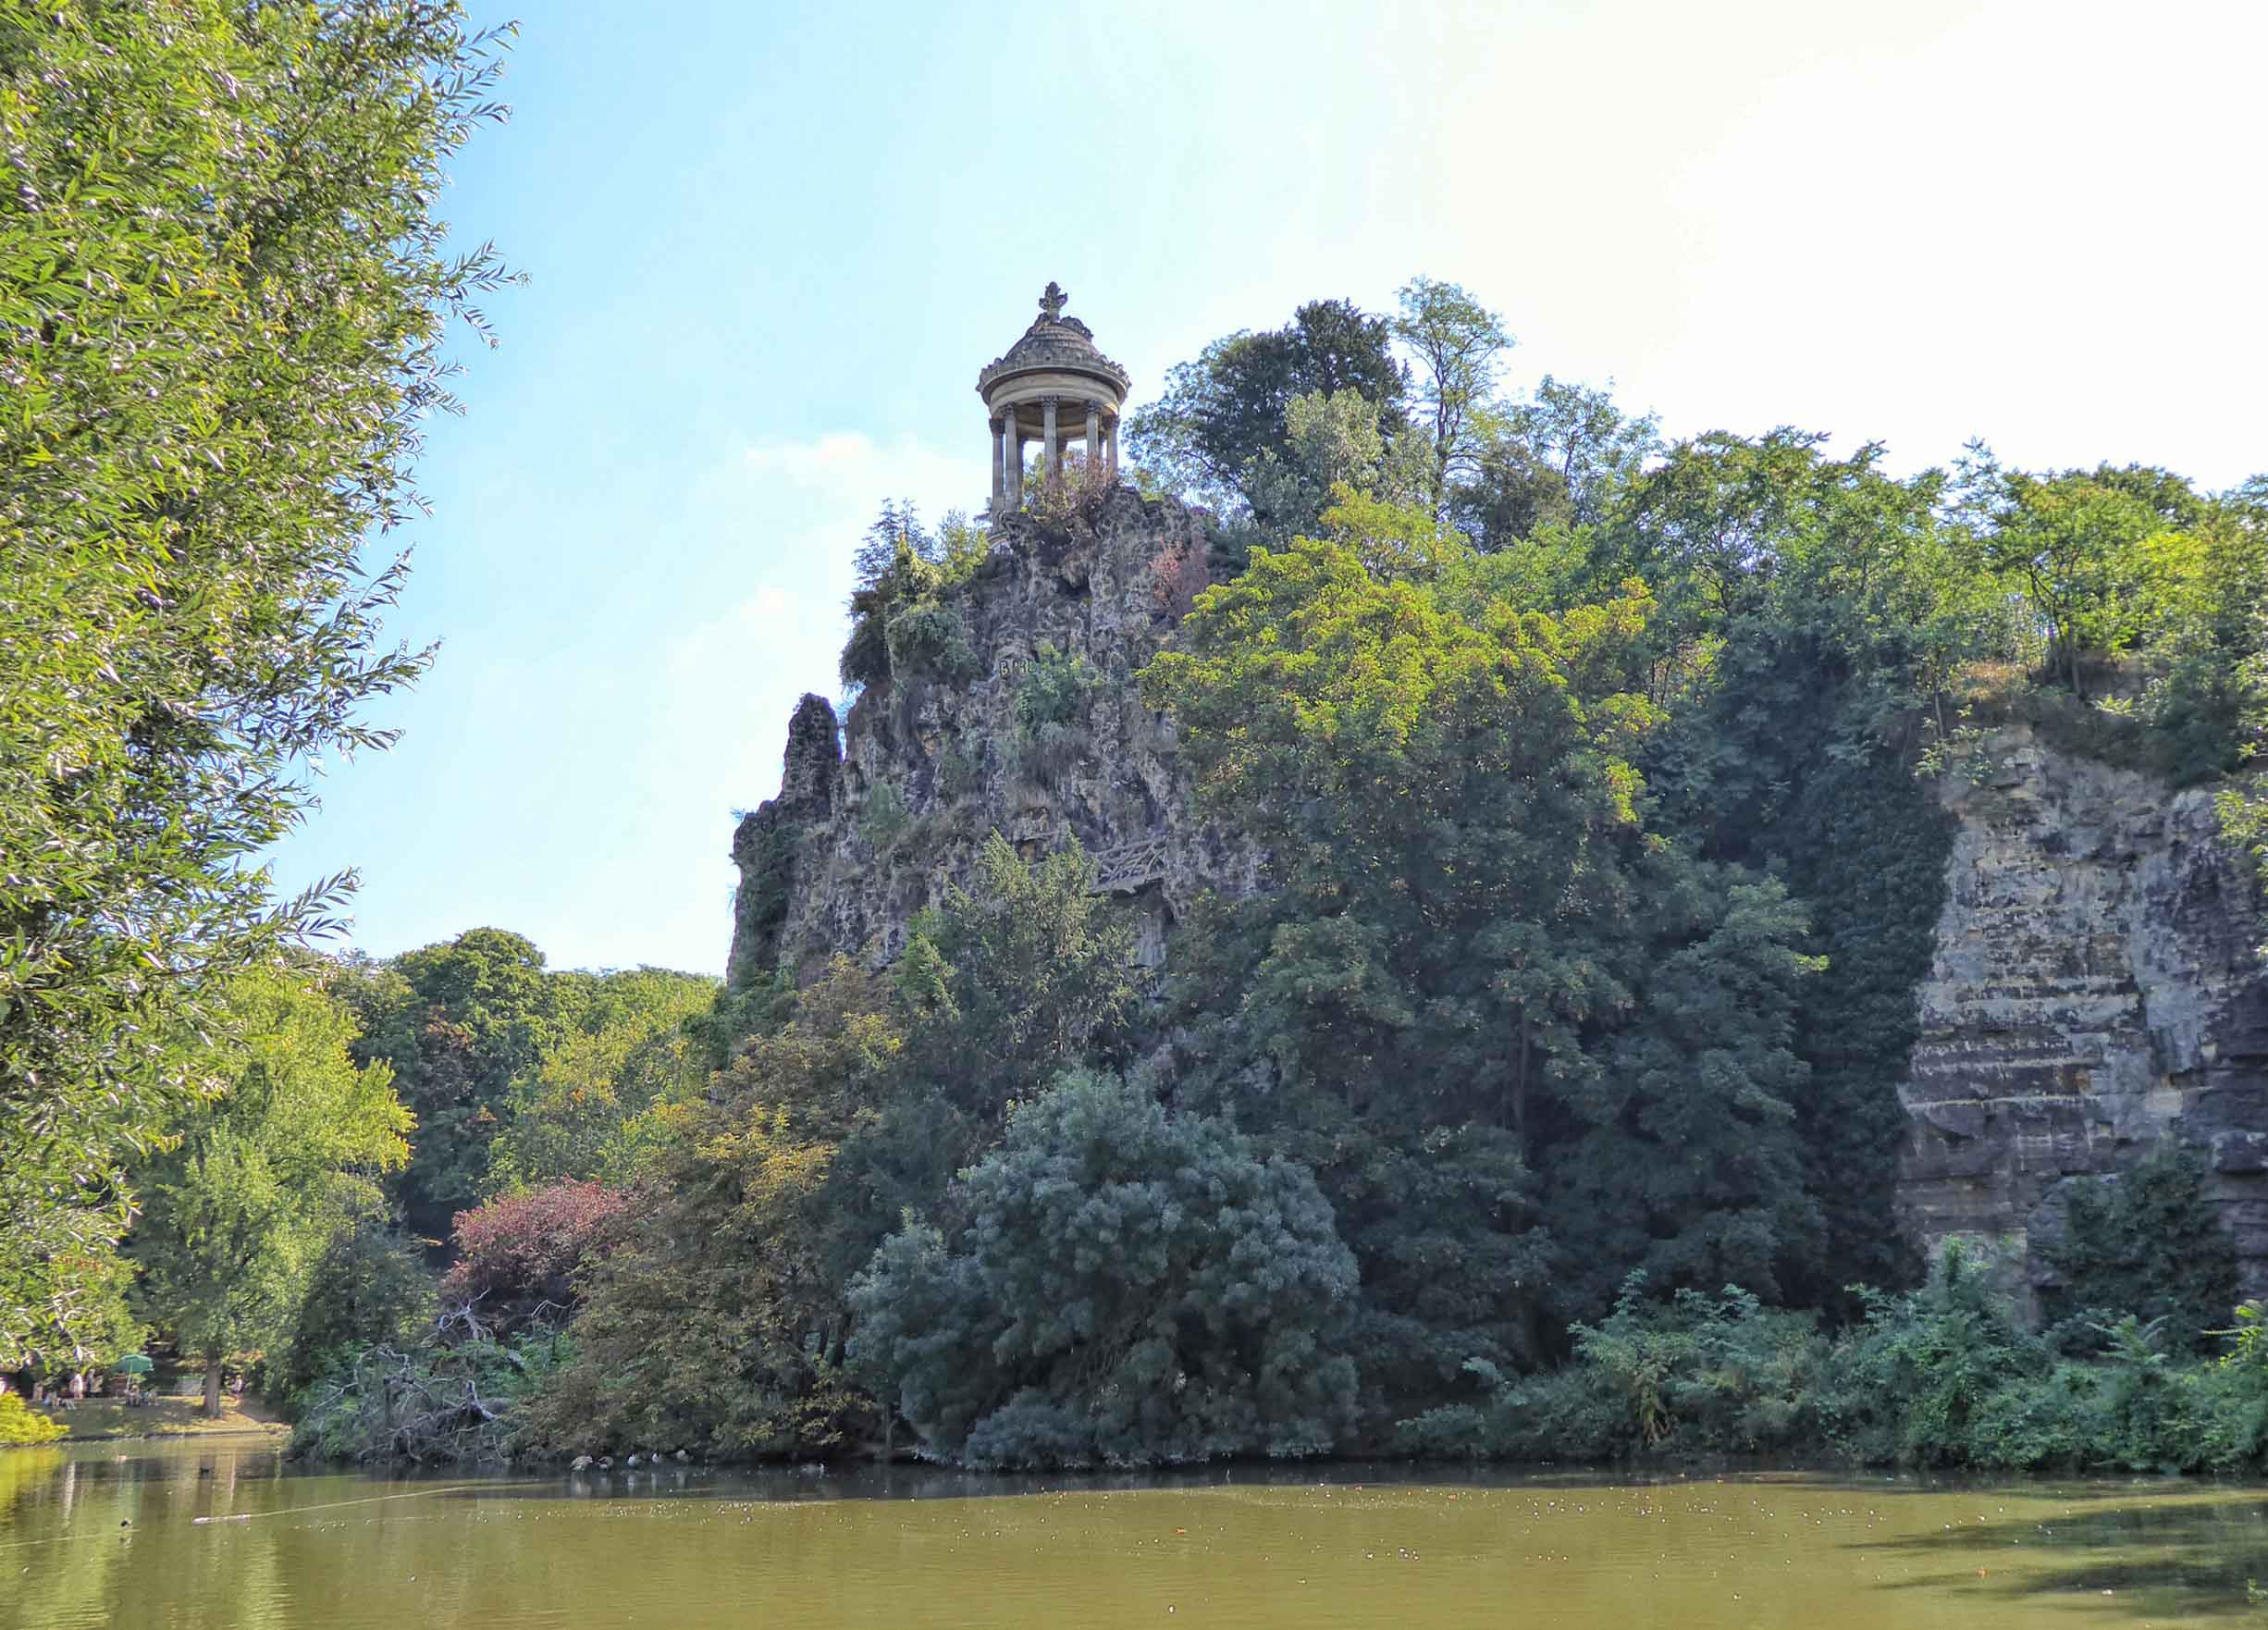 Lake with rocky islet with a small temple on top